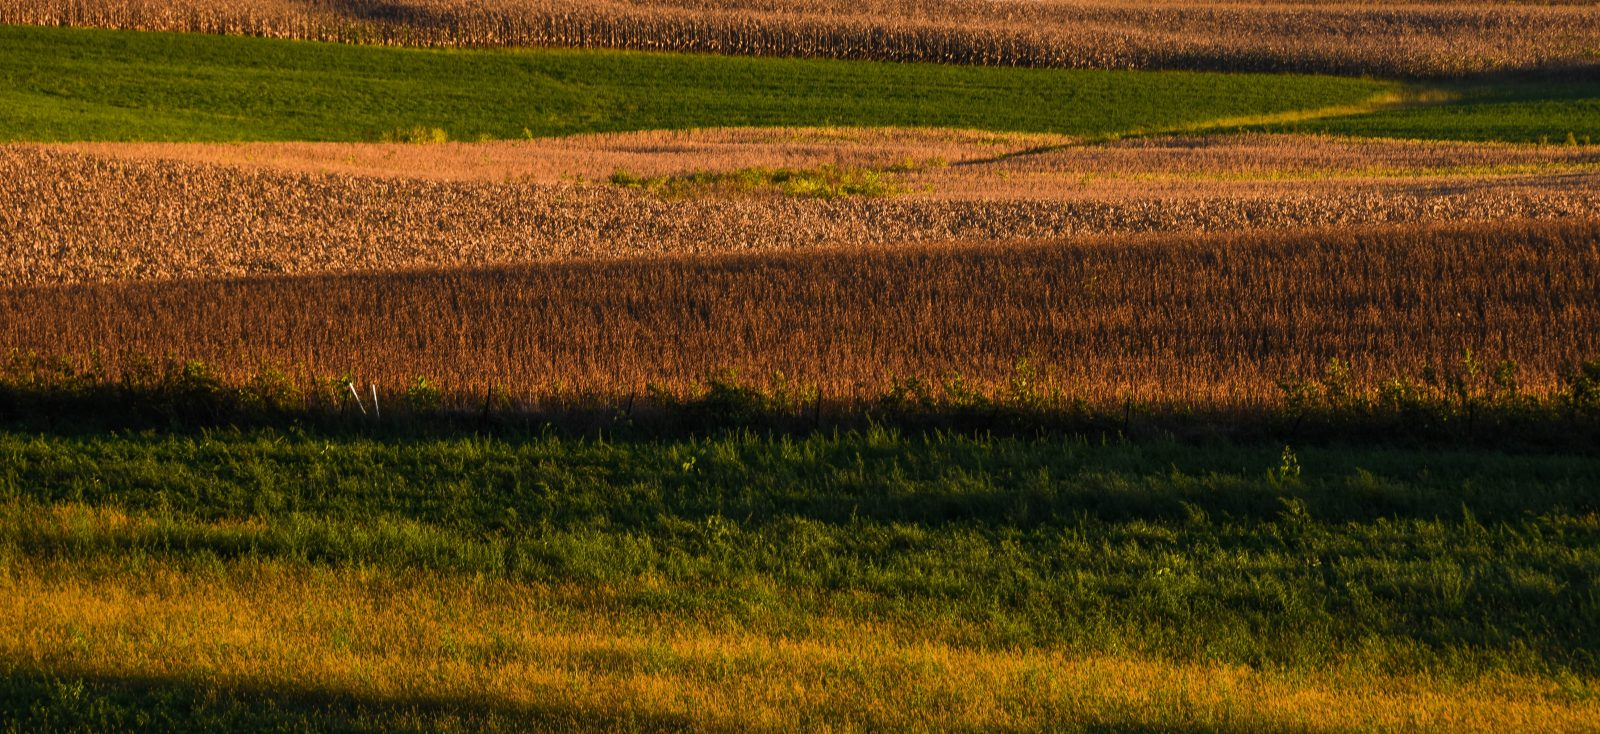 Layers in the Fields